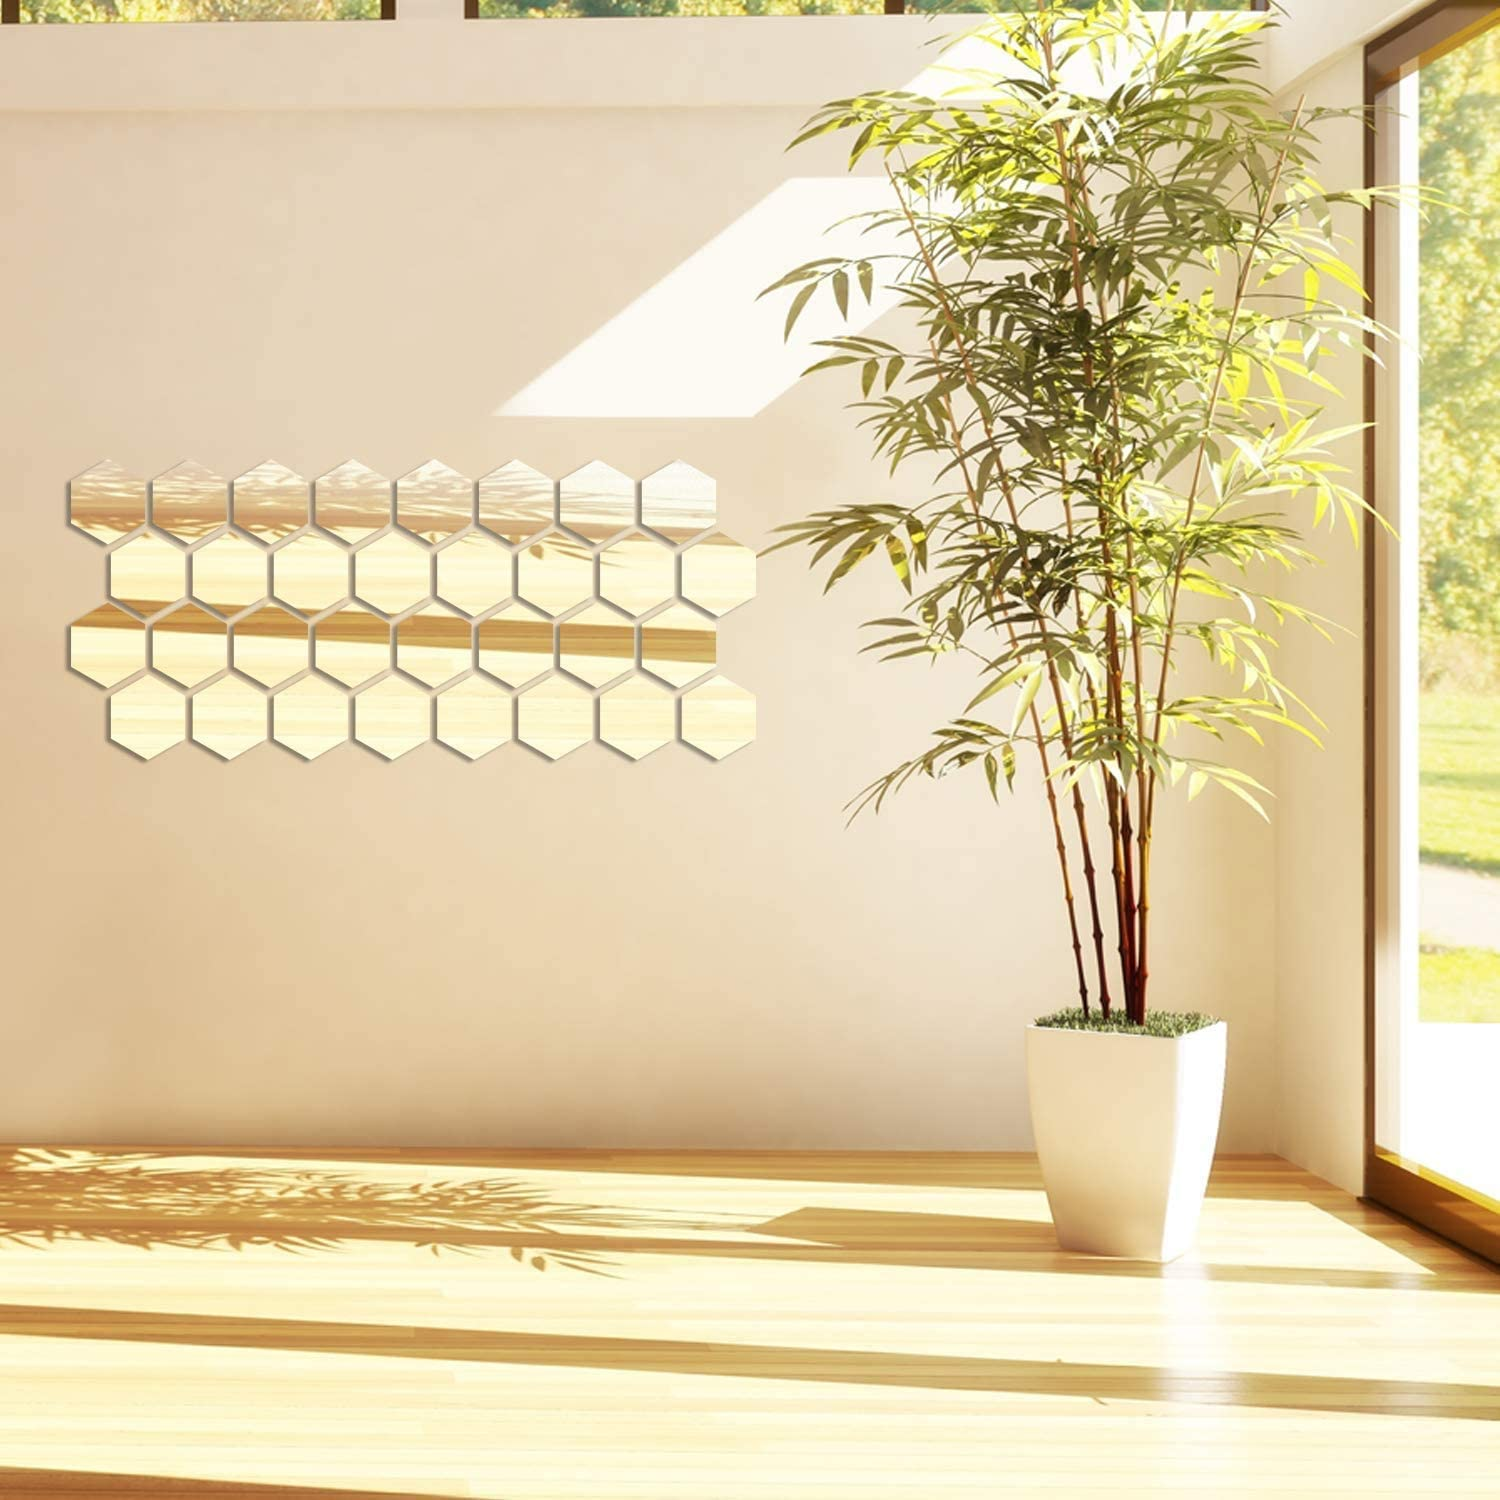 KINOEE 24 Pieces Removable Acrylic Easy to Clean Mirror Setting Wall Sticker Decal for Living Room Decoration & Home Décor - Self Adhesive Aesthetic Tiles (Middle Hexagon, 5 x 4.3 x 2.5 Inches)